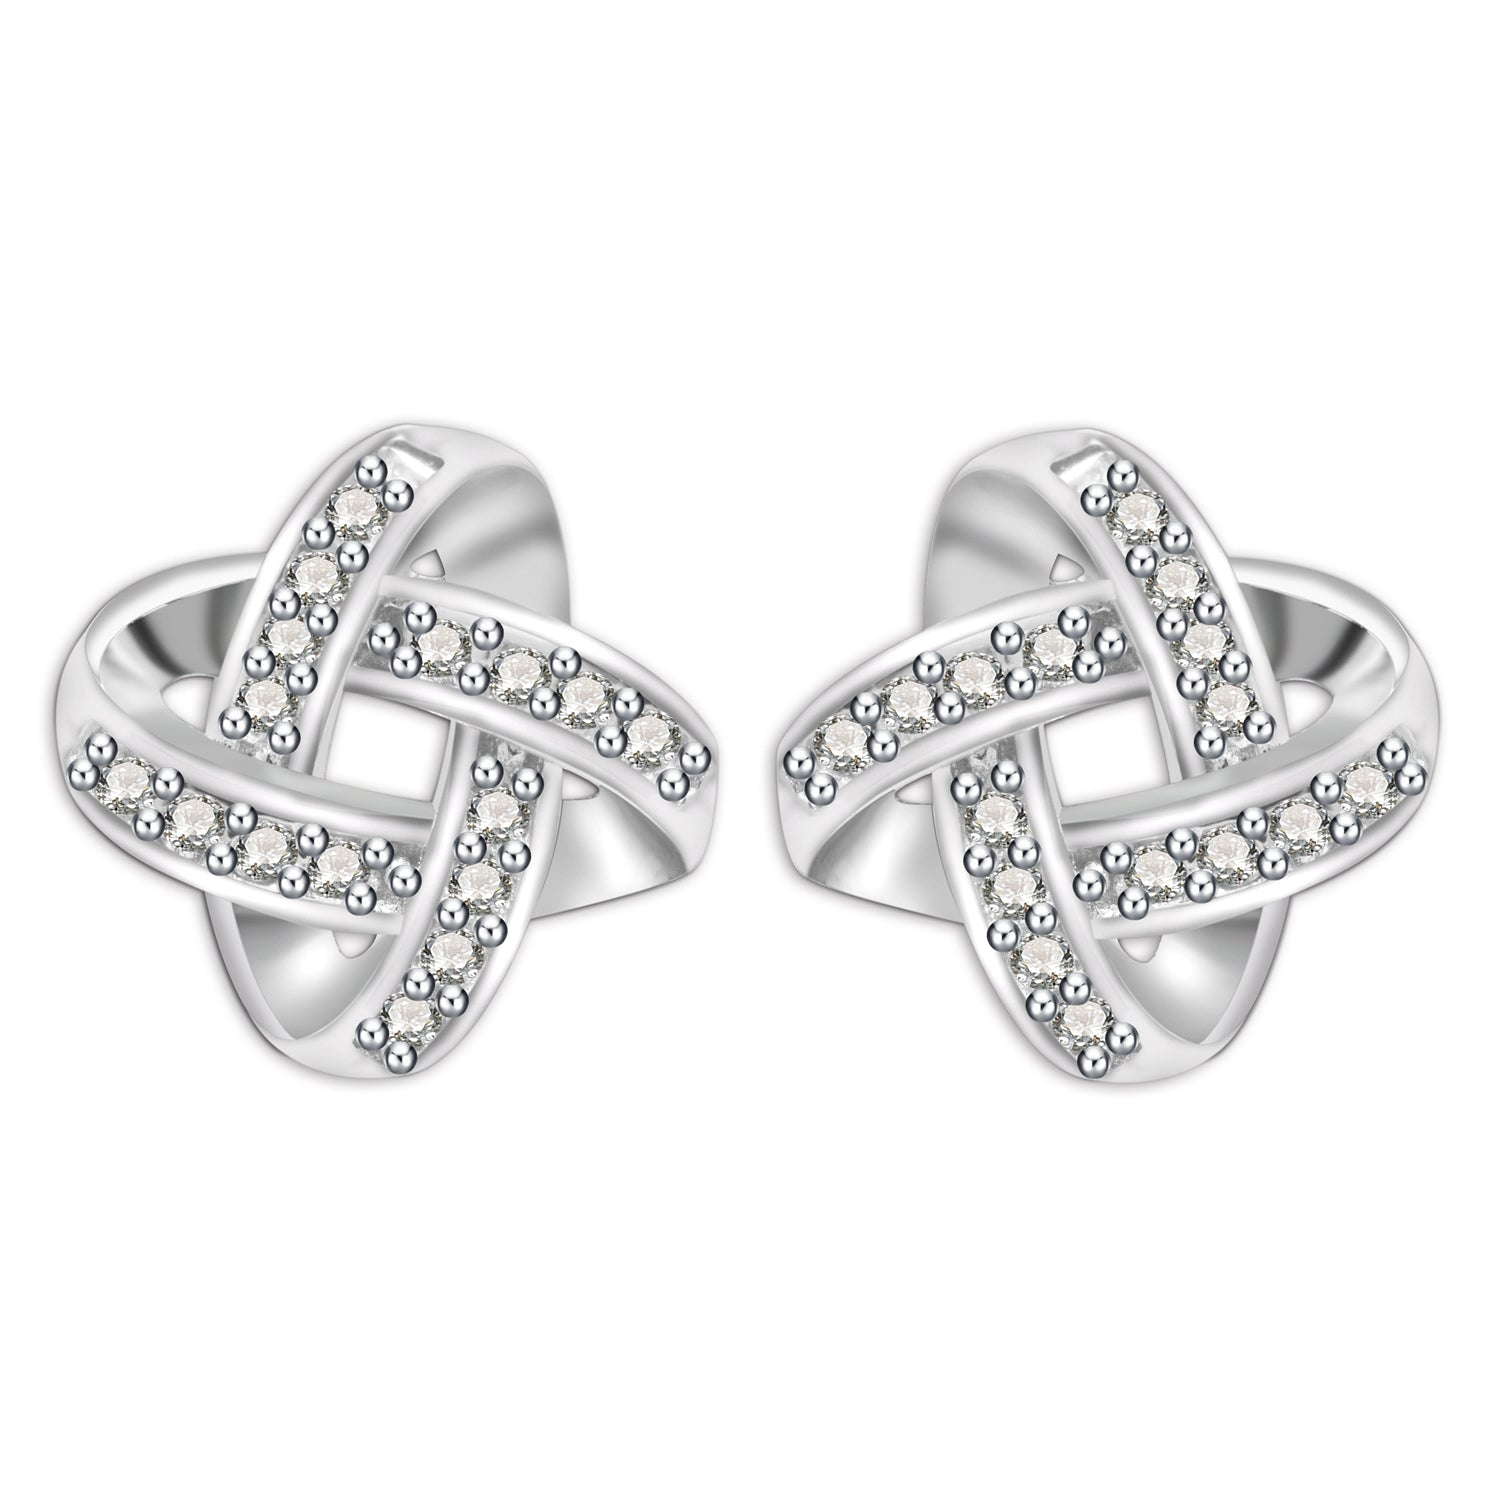 Emma Sterling Silver Earrings